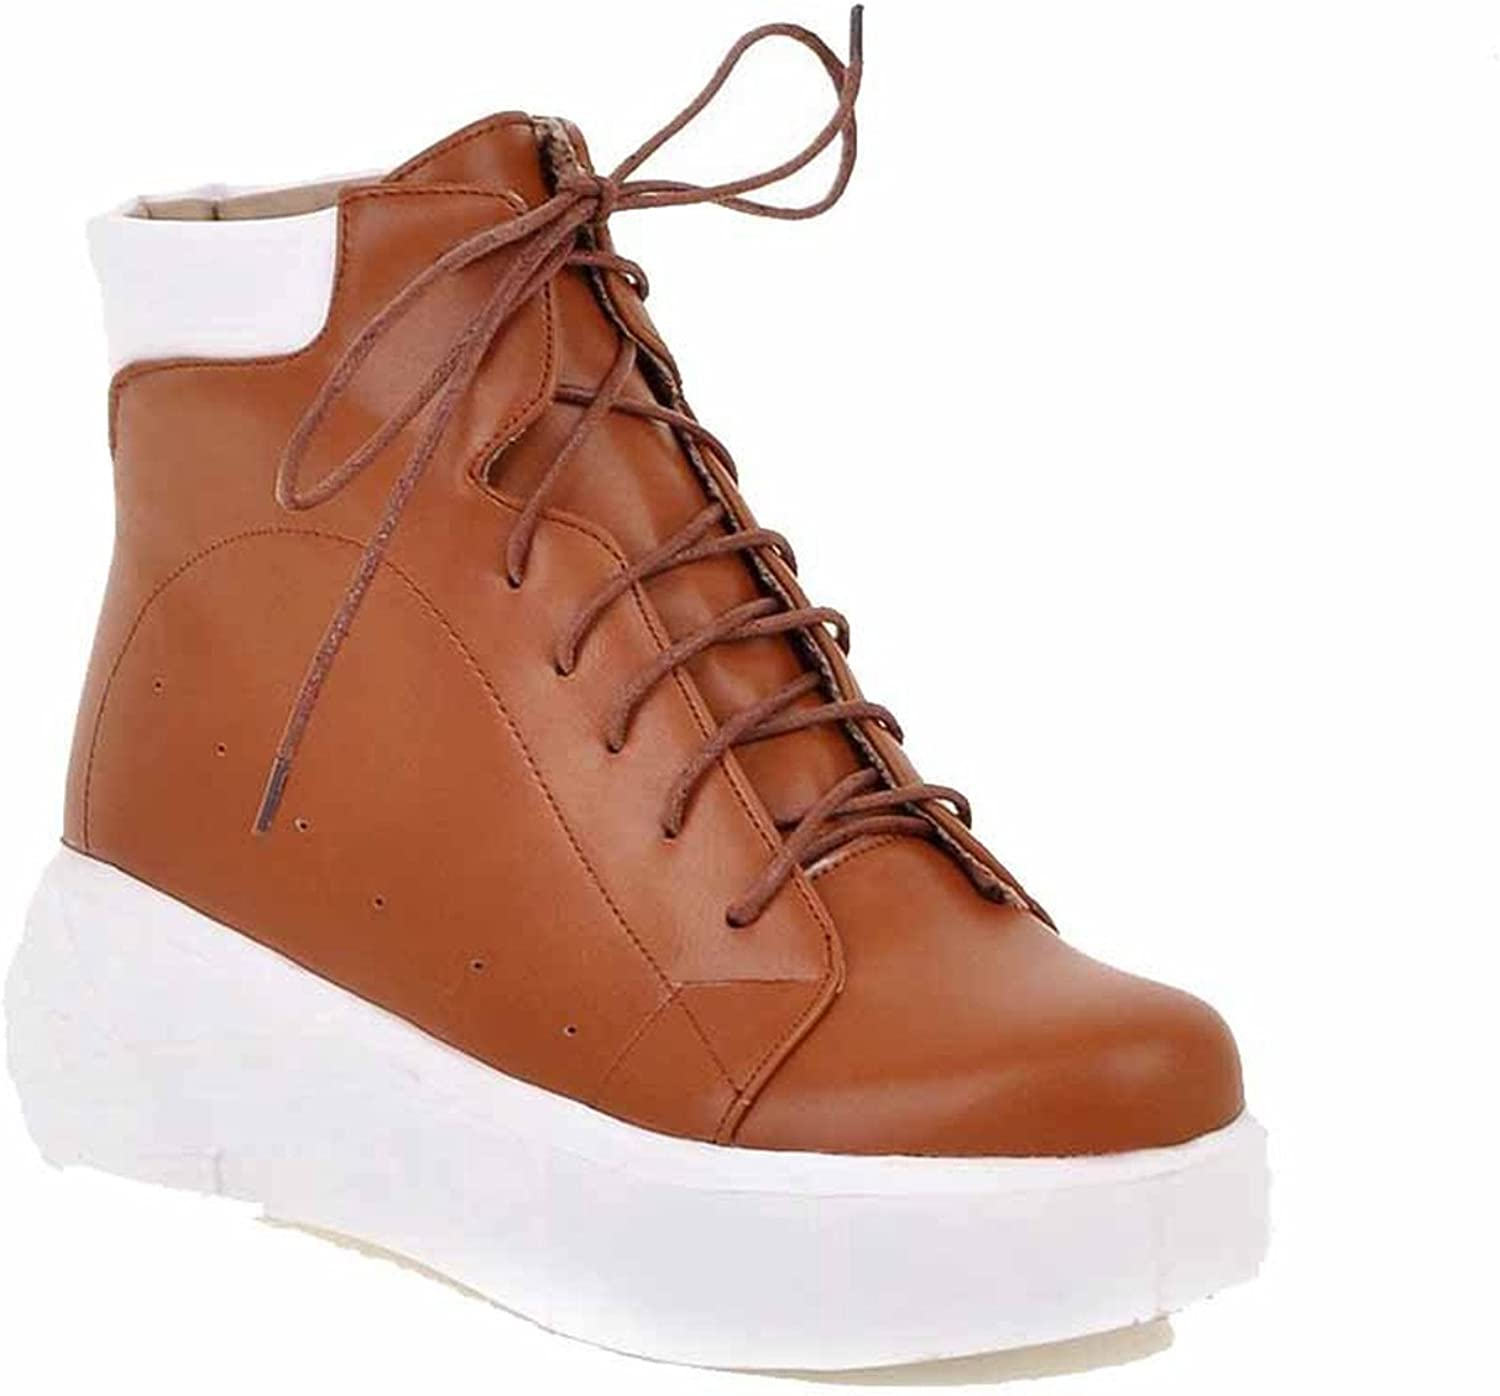 Zalezing Comfortable Women's Lace Up Round Closed Toe Kitten Heels Pu Low Top Boots